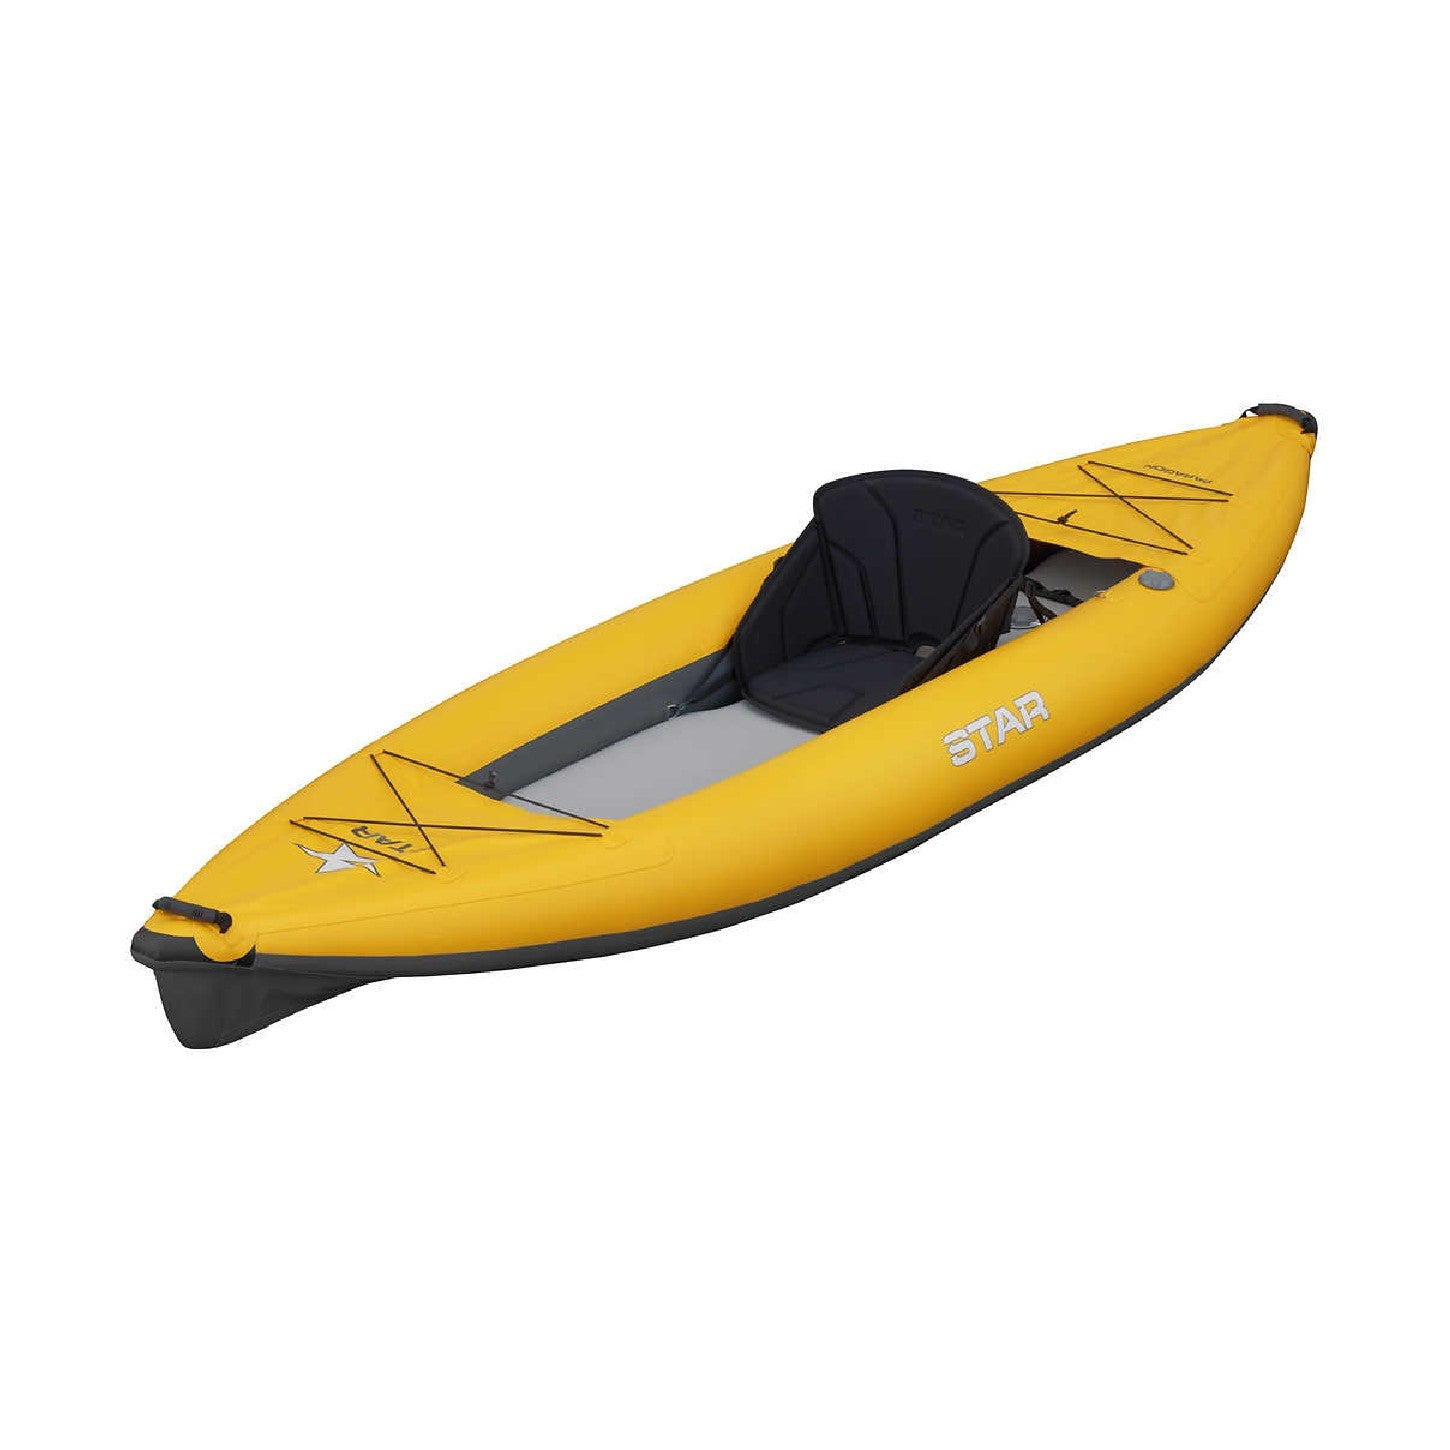 STAR Paragon Inflatable Kayak from NRS - Kayak Creek